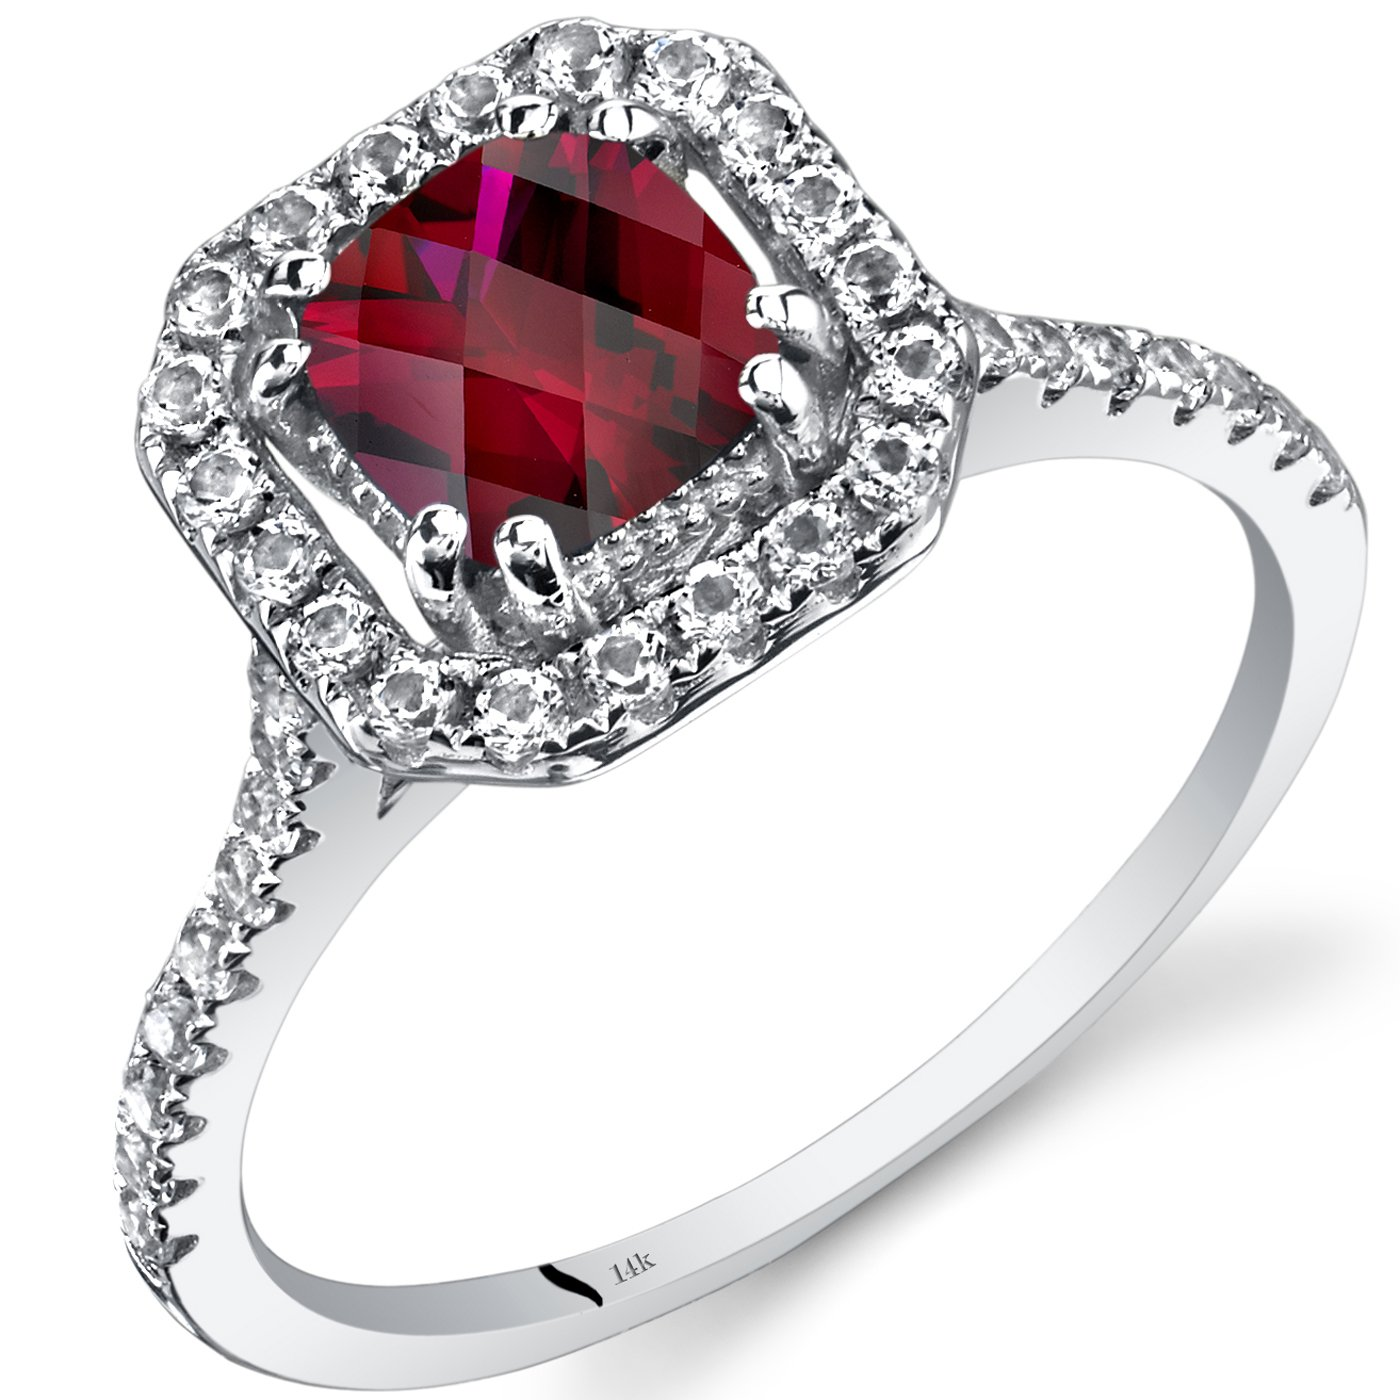 14K White Gold Created Ruby Cushion Cut Halo Ring 1.00 Carats Size 9